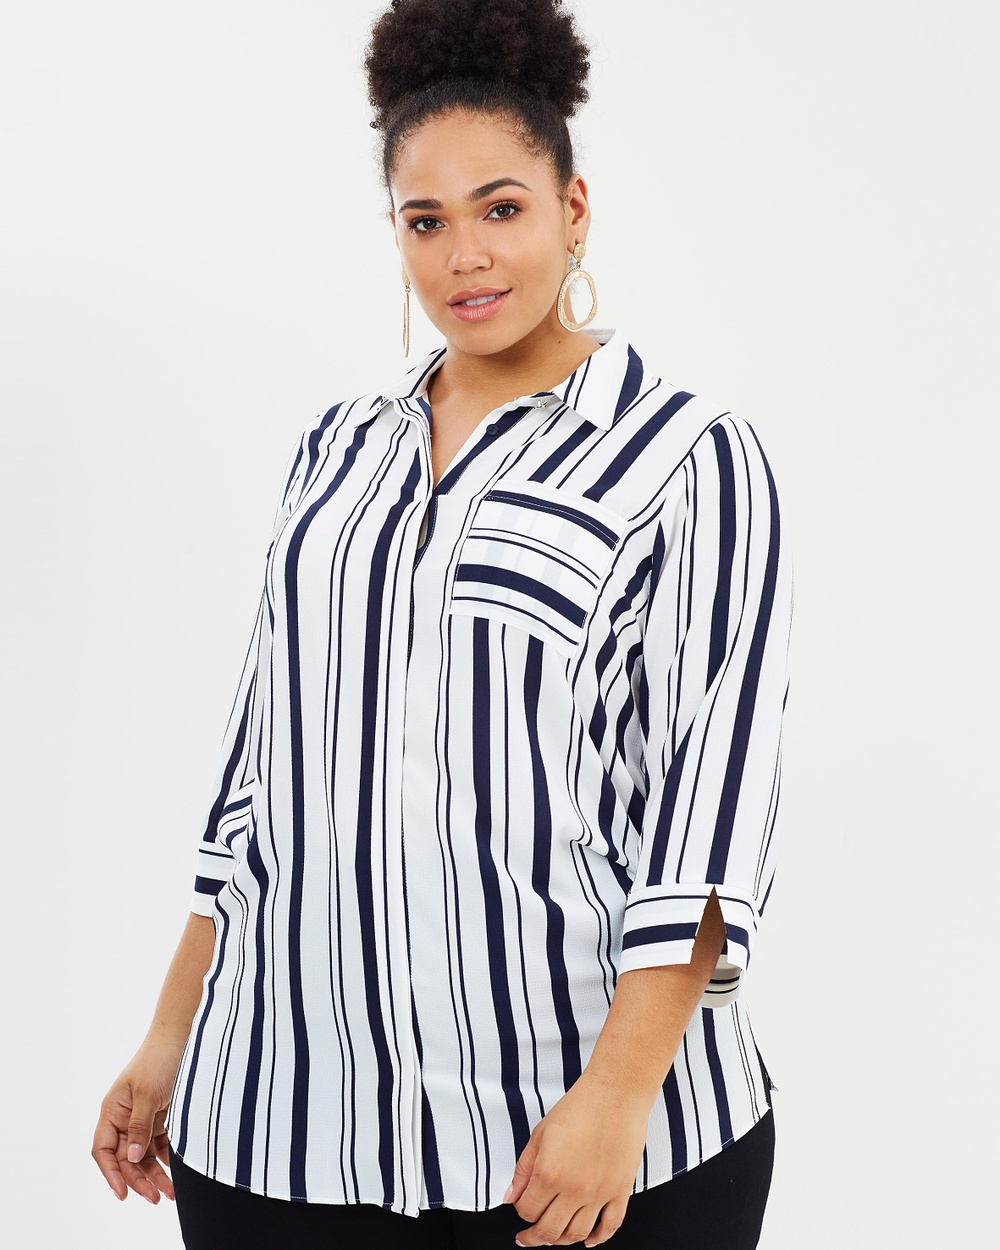 EVANS Navy Stripe Shirt Tops Navy Navy Stripe Shirt